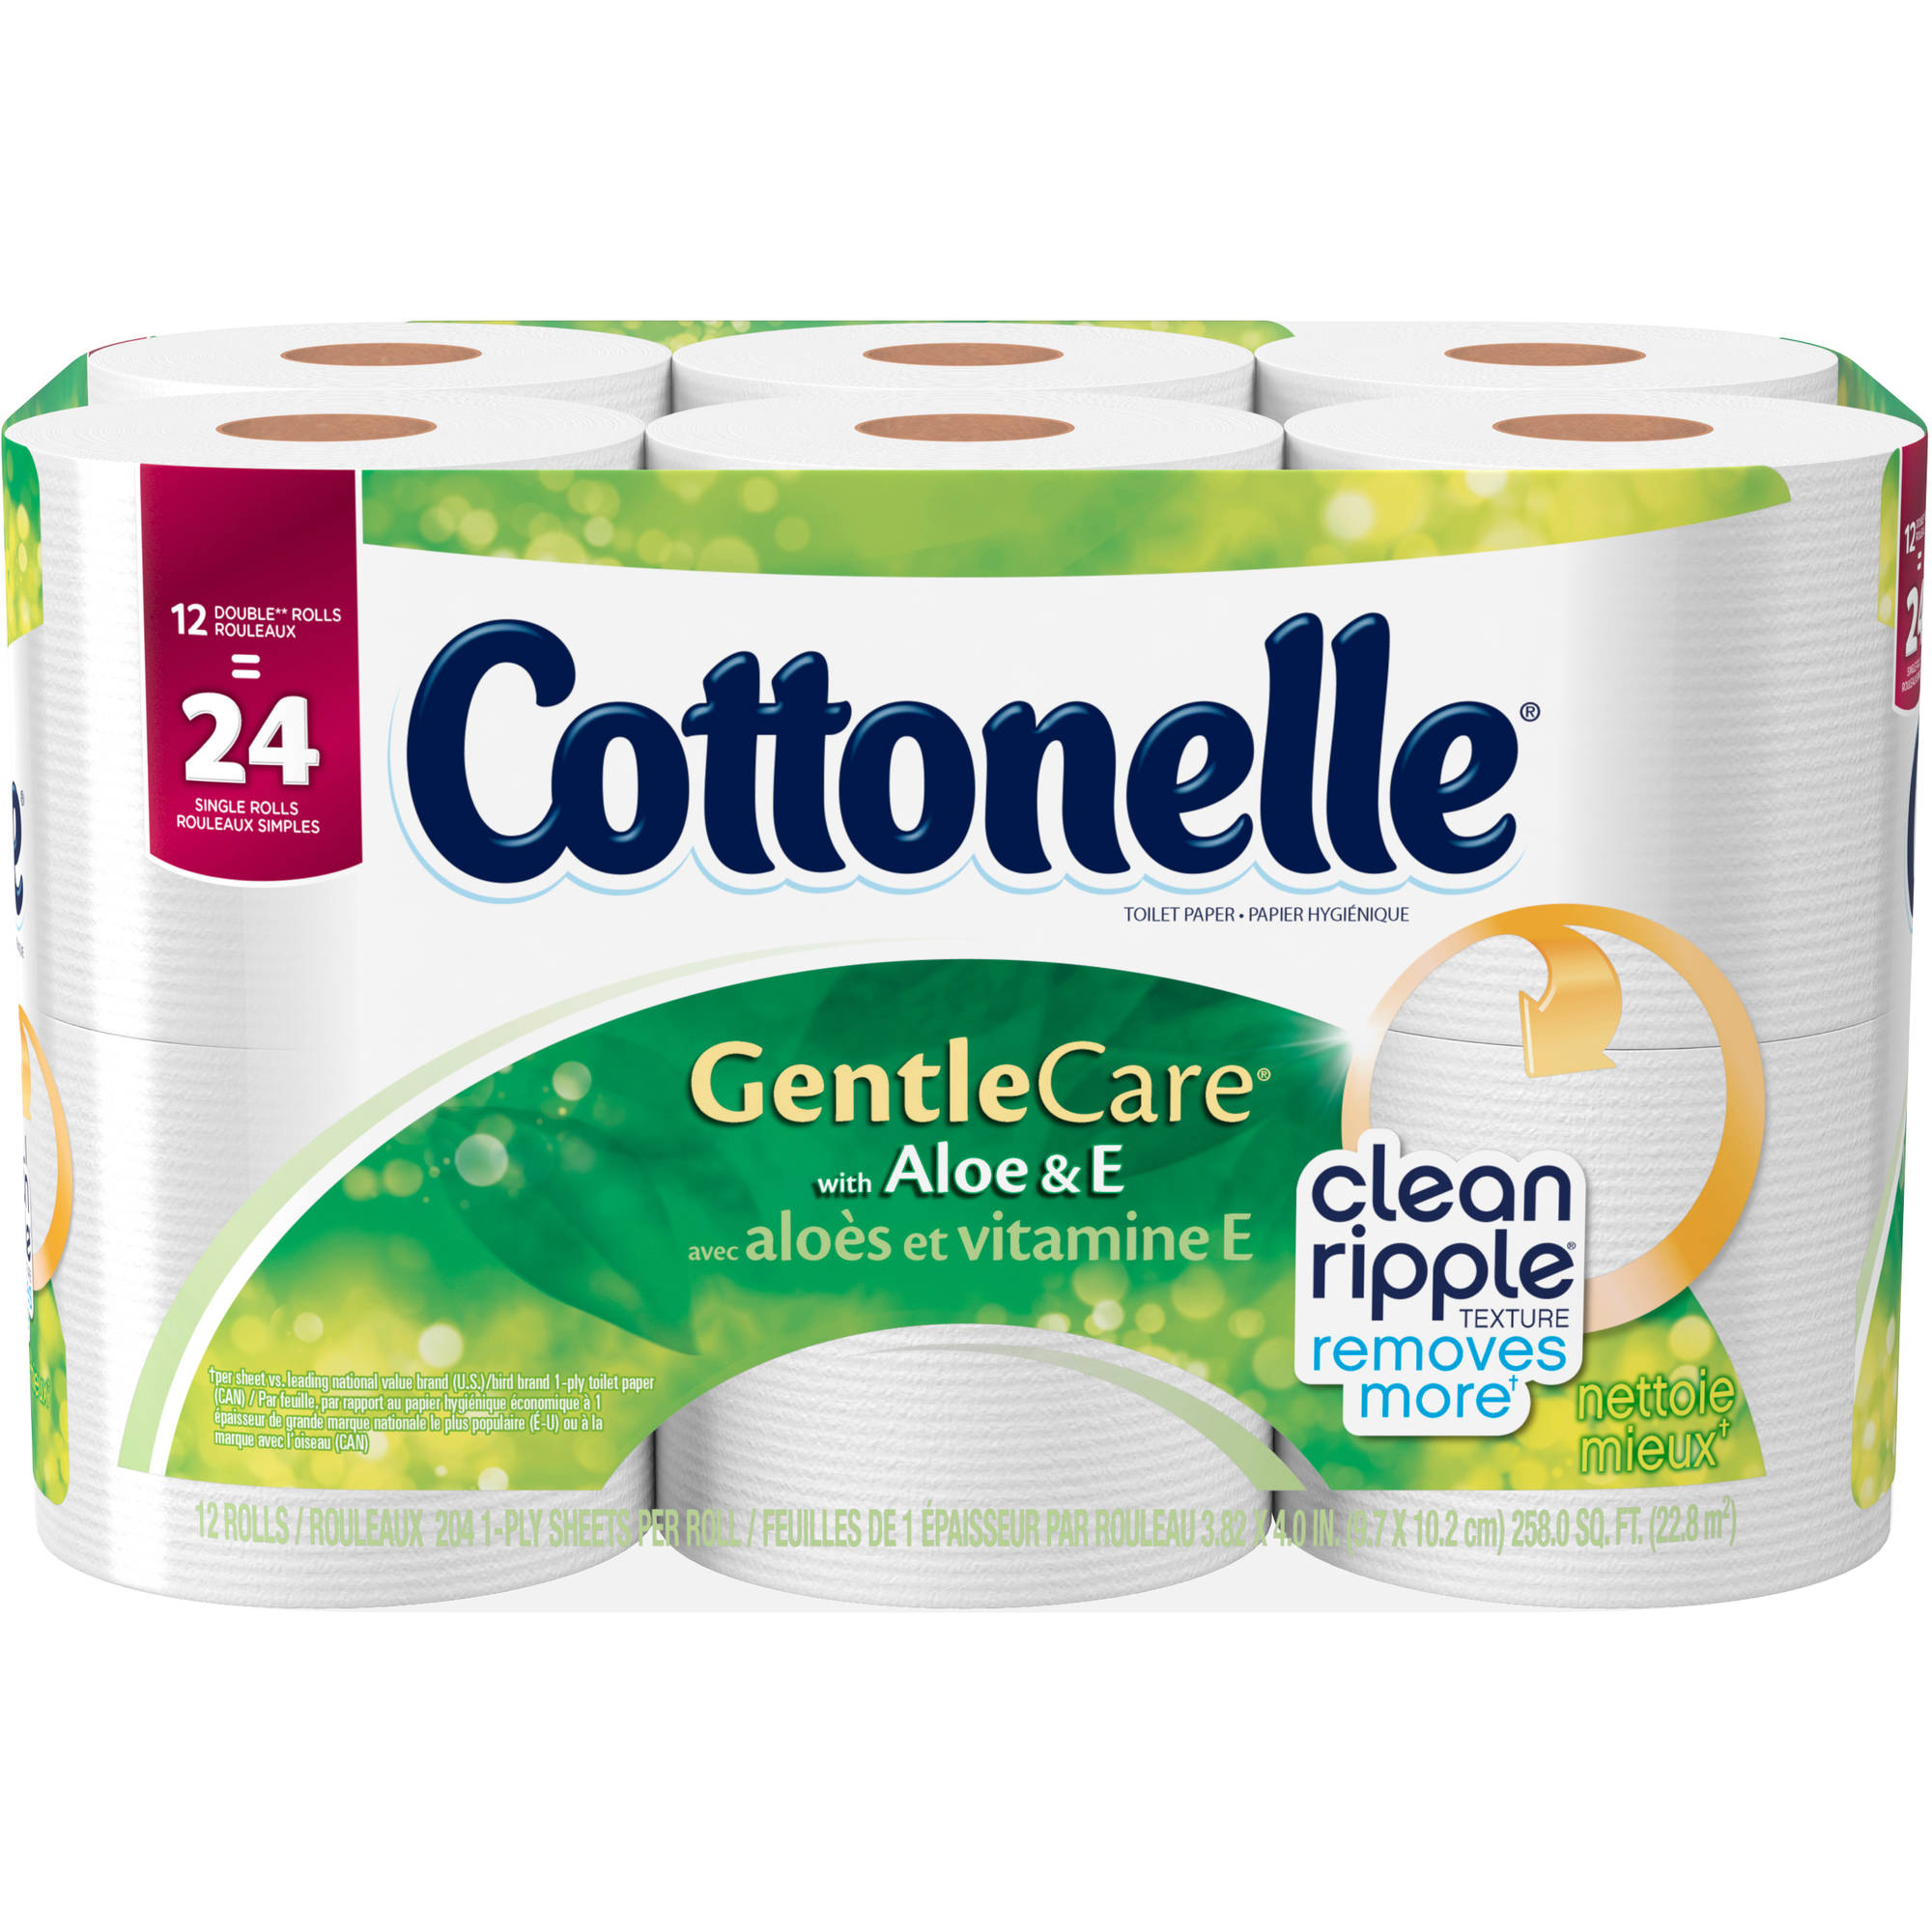 Cottonelle Gentle Care Toilet Paper Double Rolls with Aloe & E, 204 sheets, 12 rolls